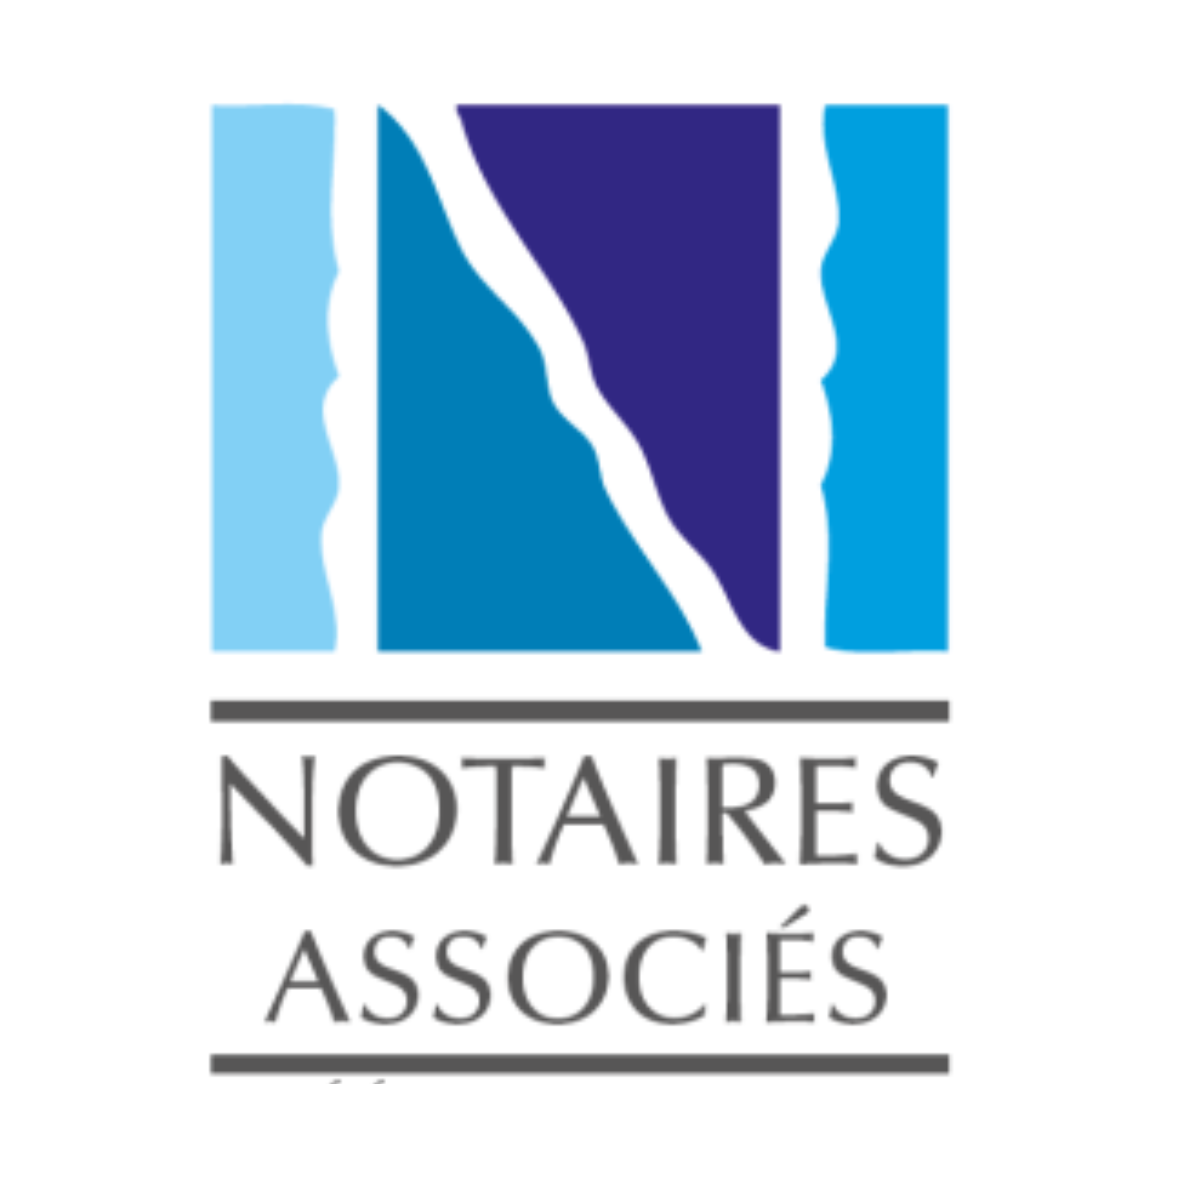 LOGO NOTAIRES ASSOCIES